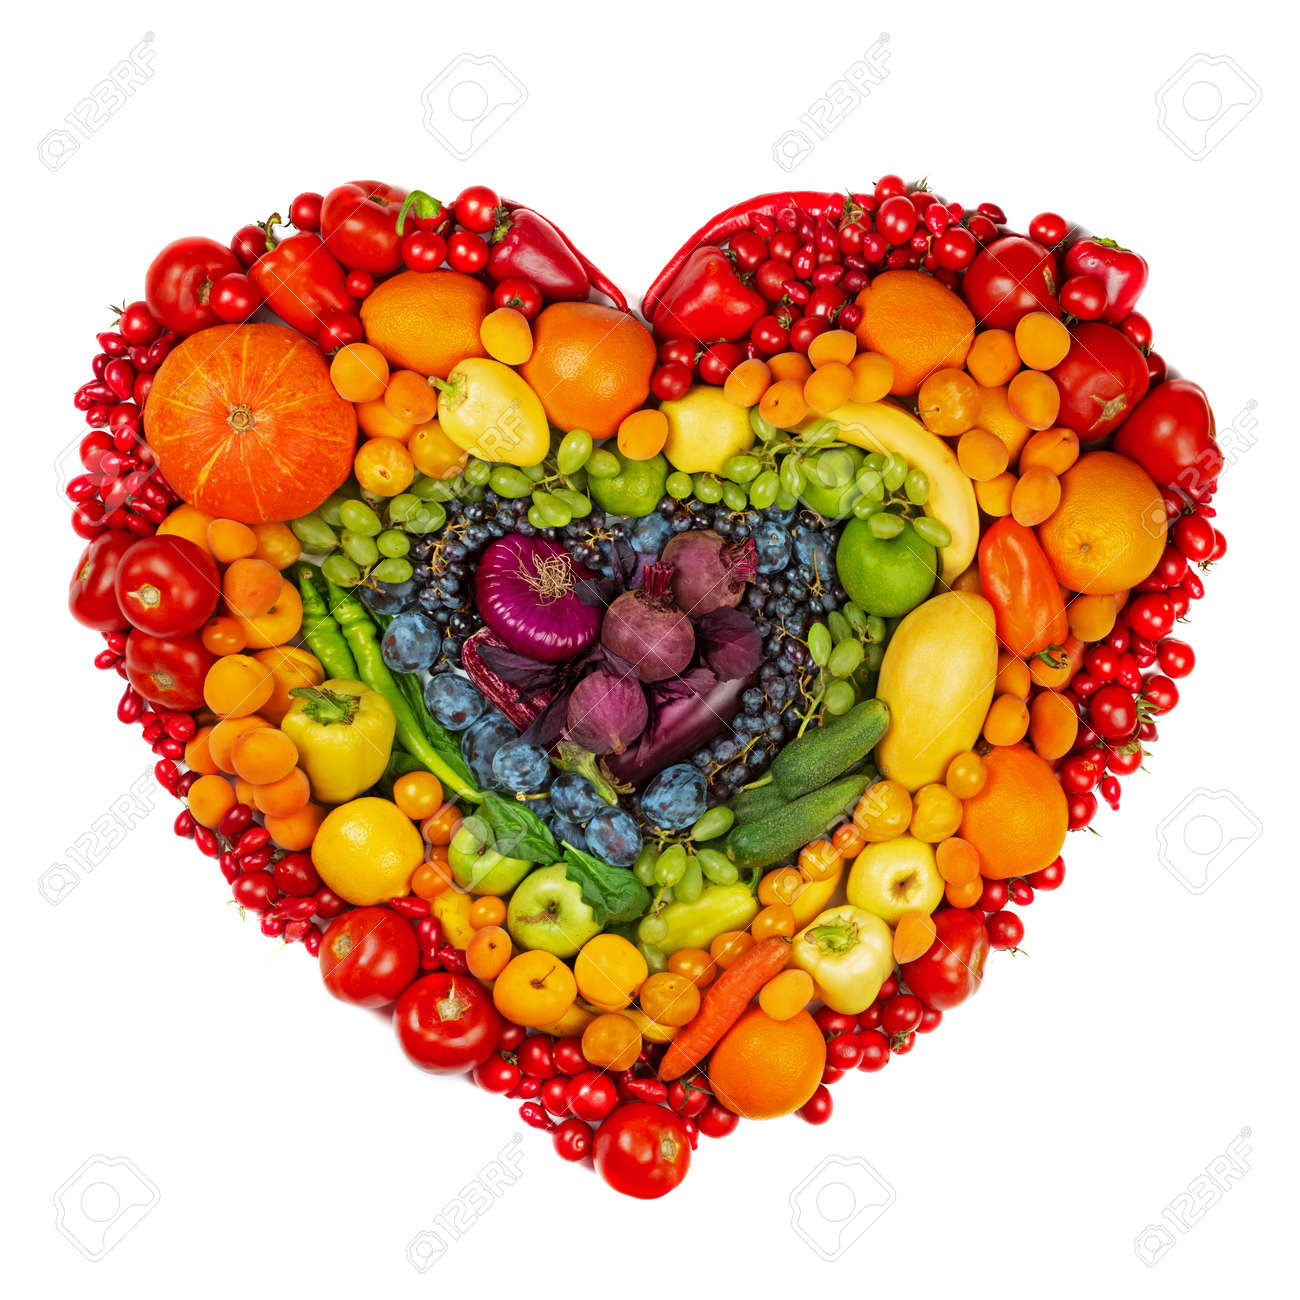 Rainbow heart of fruits and vegetables studio isolated on white background go vegetarian love healthy eating concept - 153584014